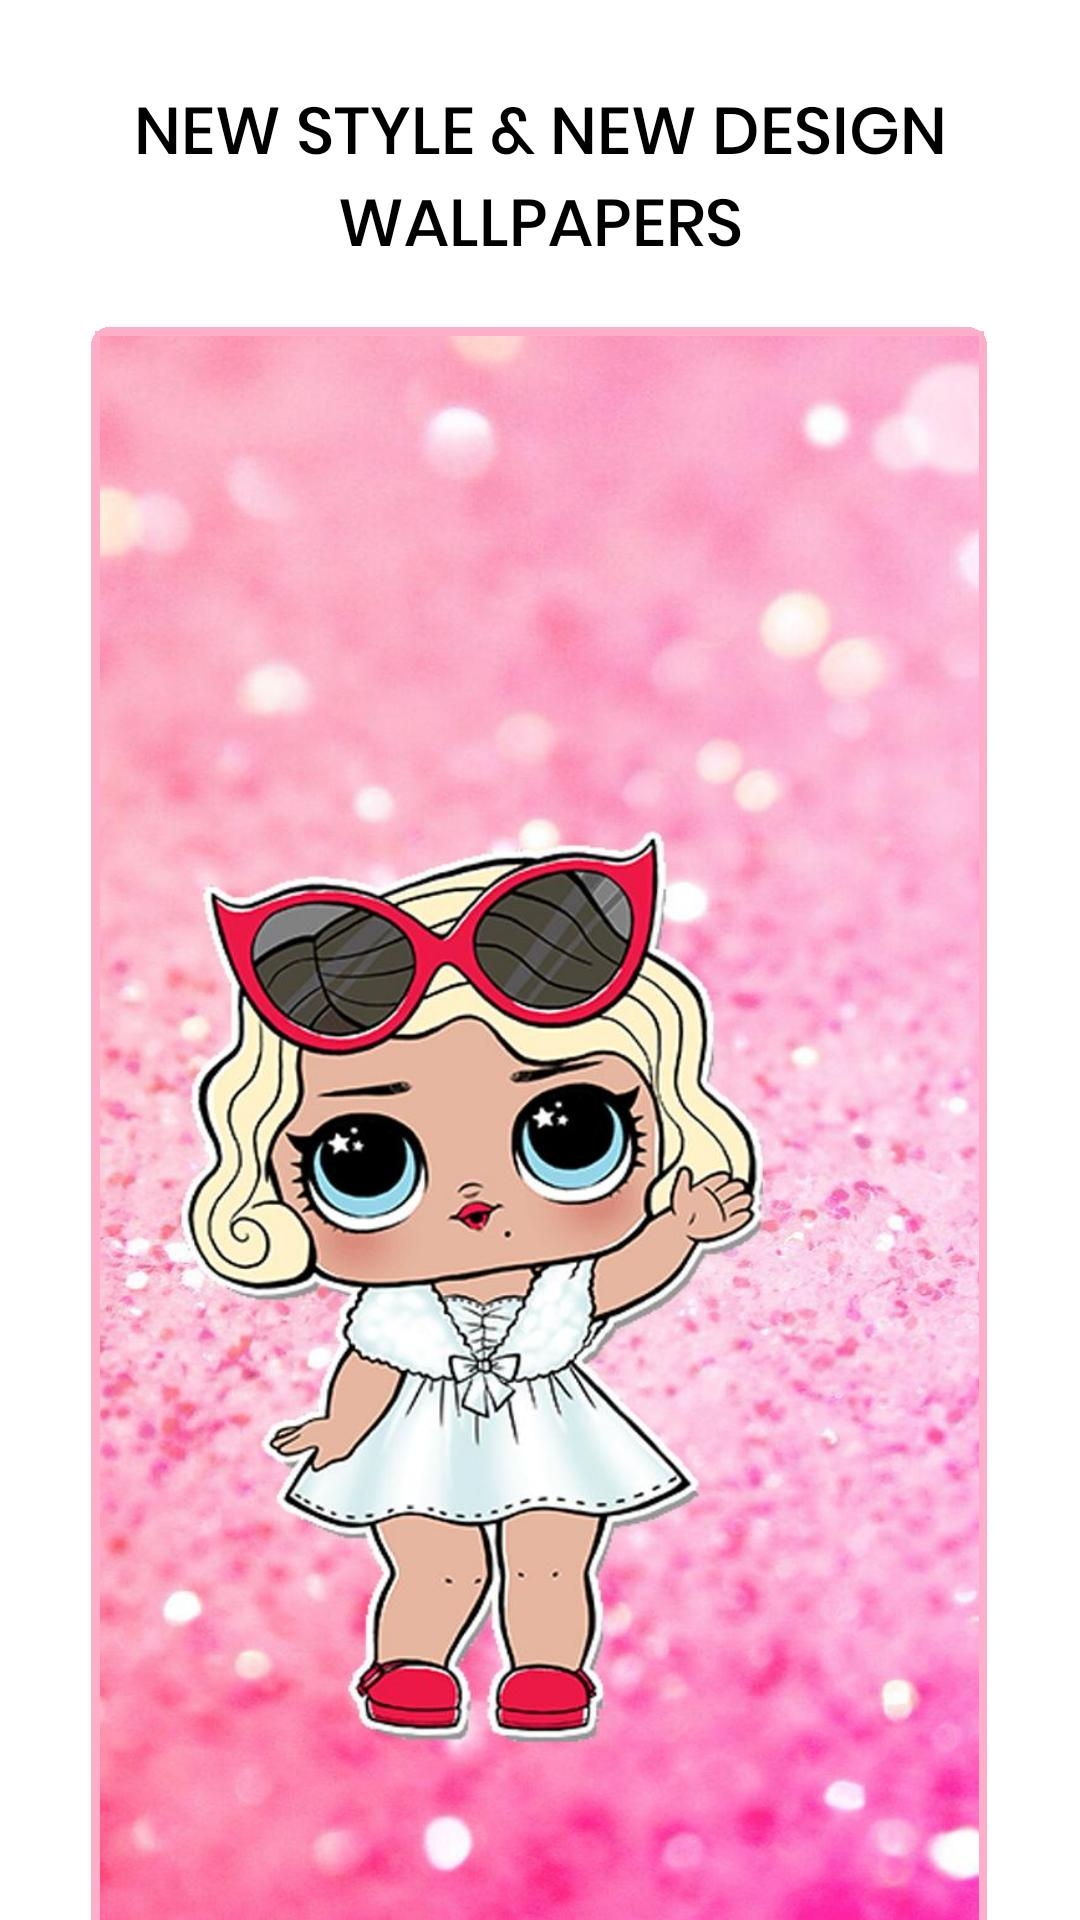 Cute Doll Surprise Wallpapers Lol Surprise Dolls For